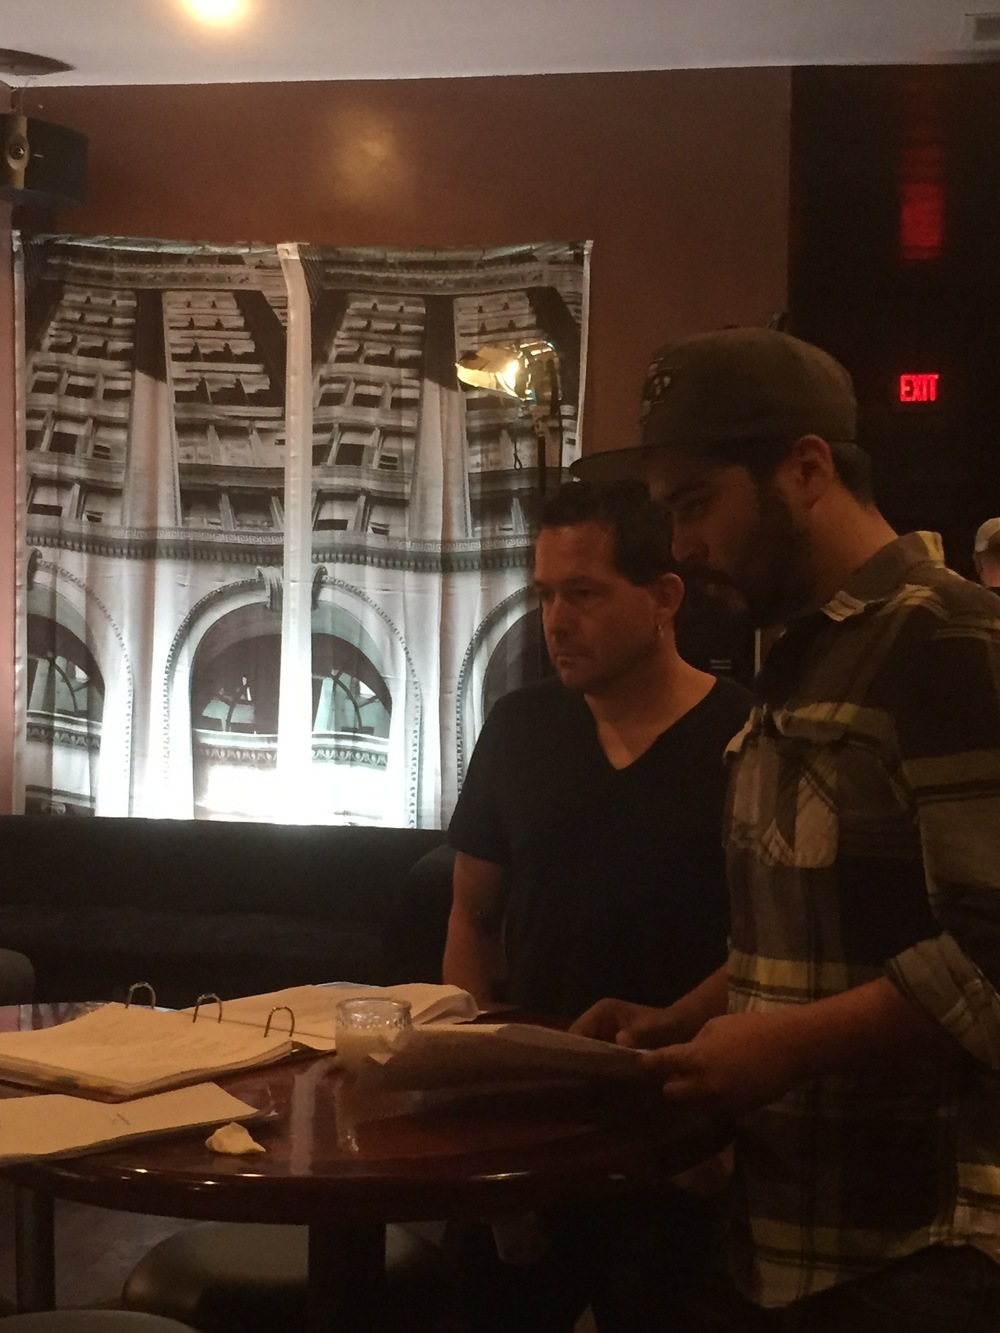 Kevin Sluder, Executive Producer and Writer, reviews the day's shot list with Gabe Arredondo, Co-Producer and Assistant Director